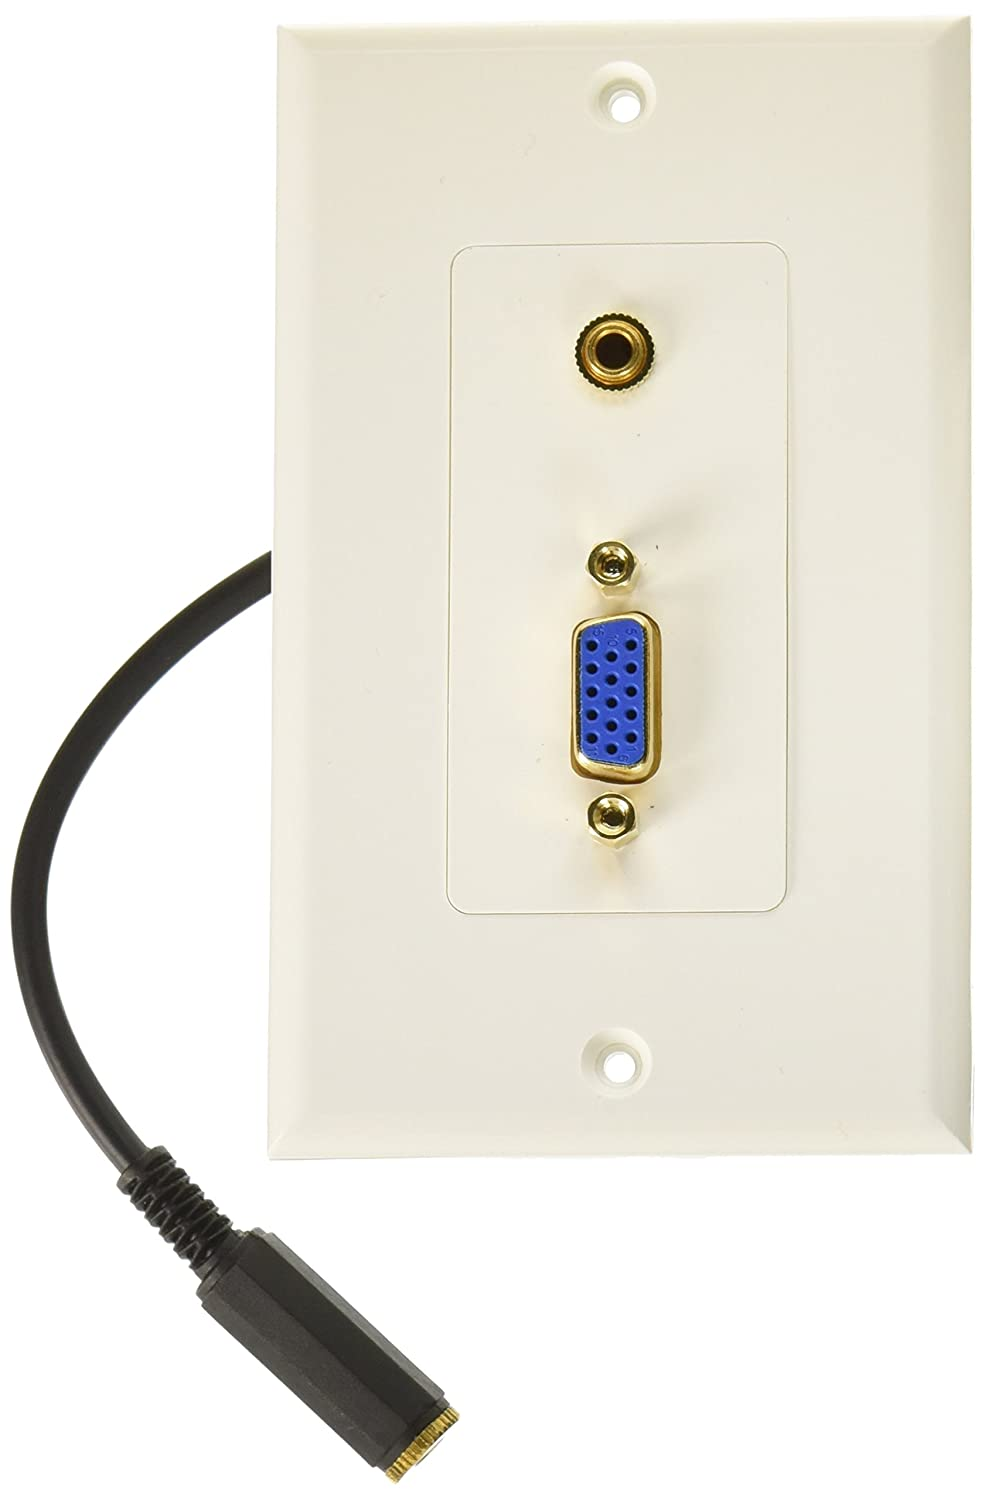 Monoprice 104569 VGA Stereo Audio Wall Plate, 3.5mm, Gold Plated